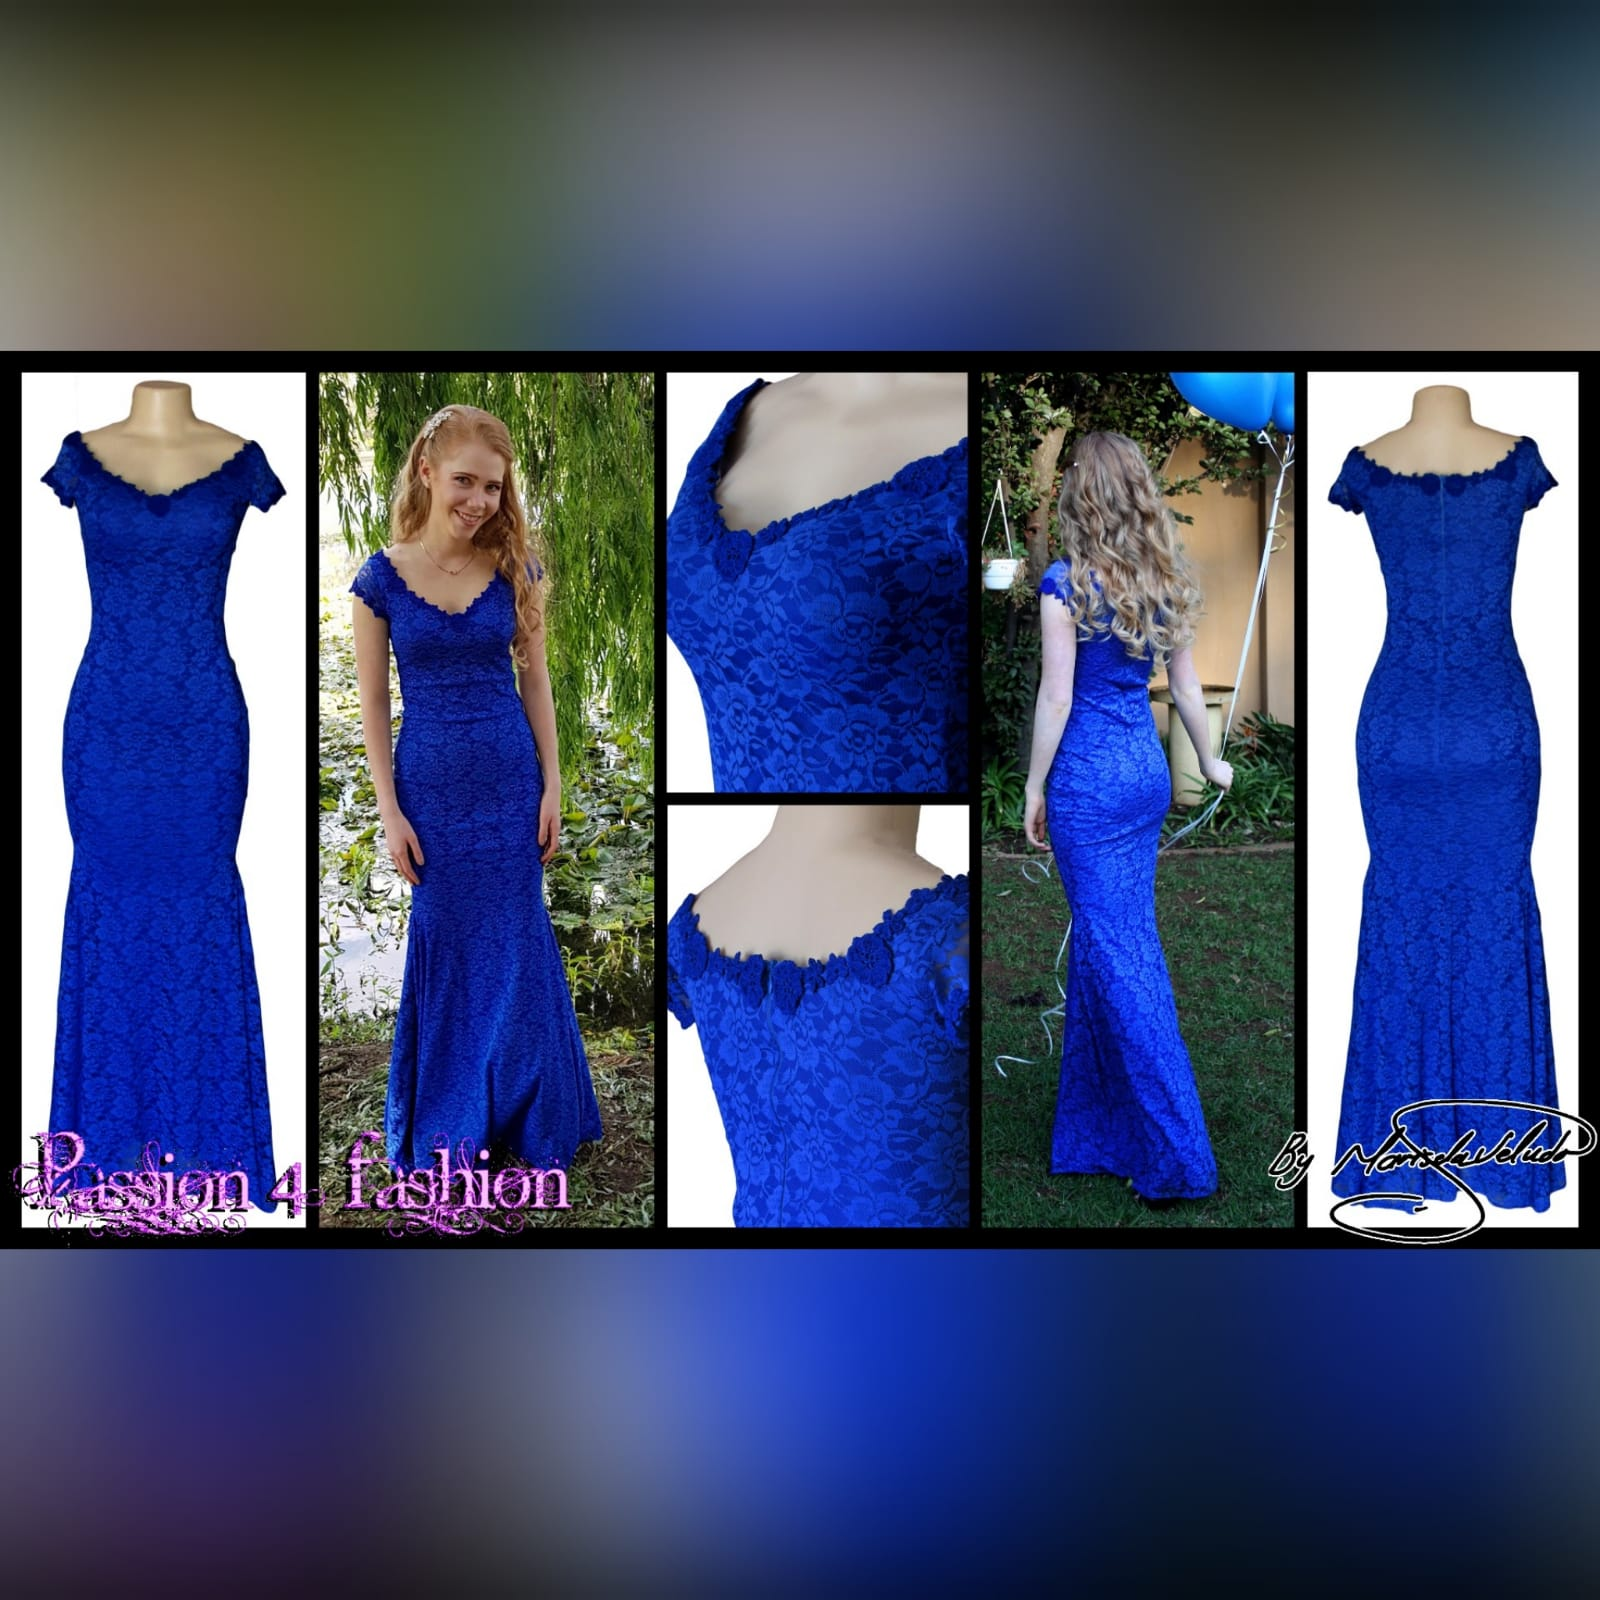 Royal blue fully lace prom dress 3 royal blue fully lace prom dress. An elegant simple design fitted till the hip with a slight flare. An off-shoulder neckline and cap sleeves detailed with guipure lace.